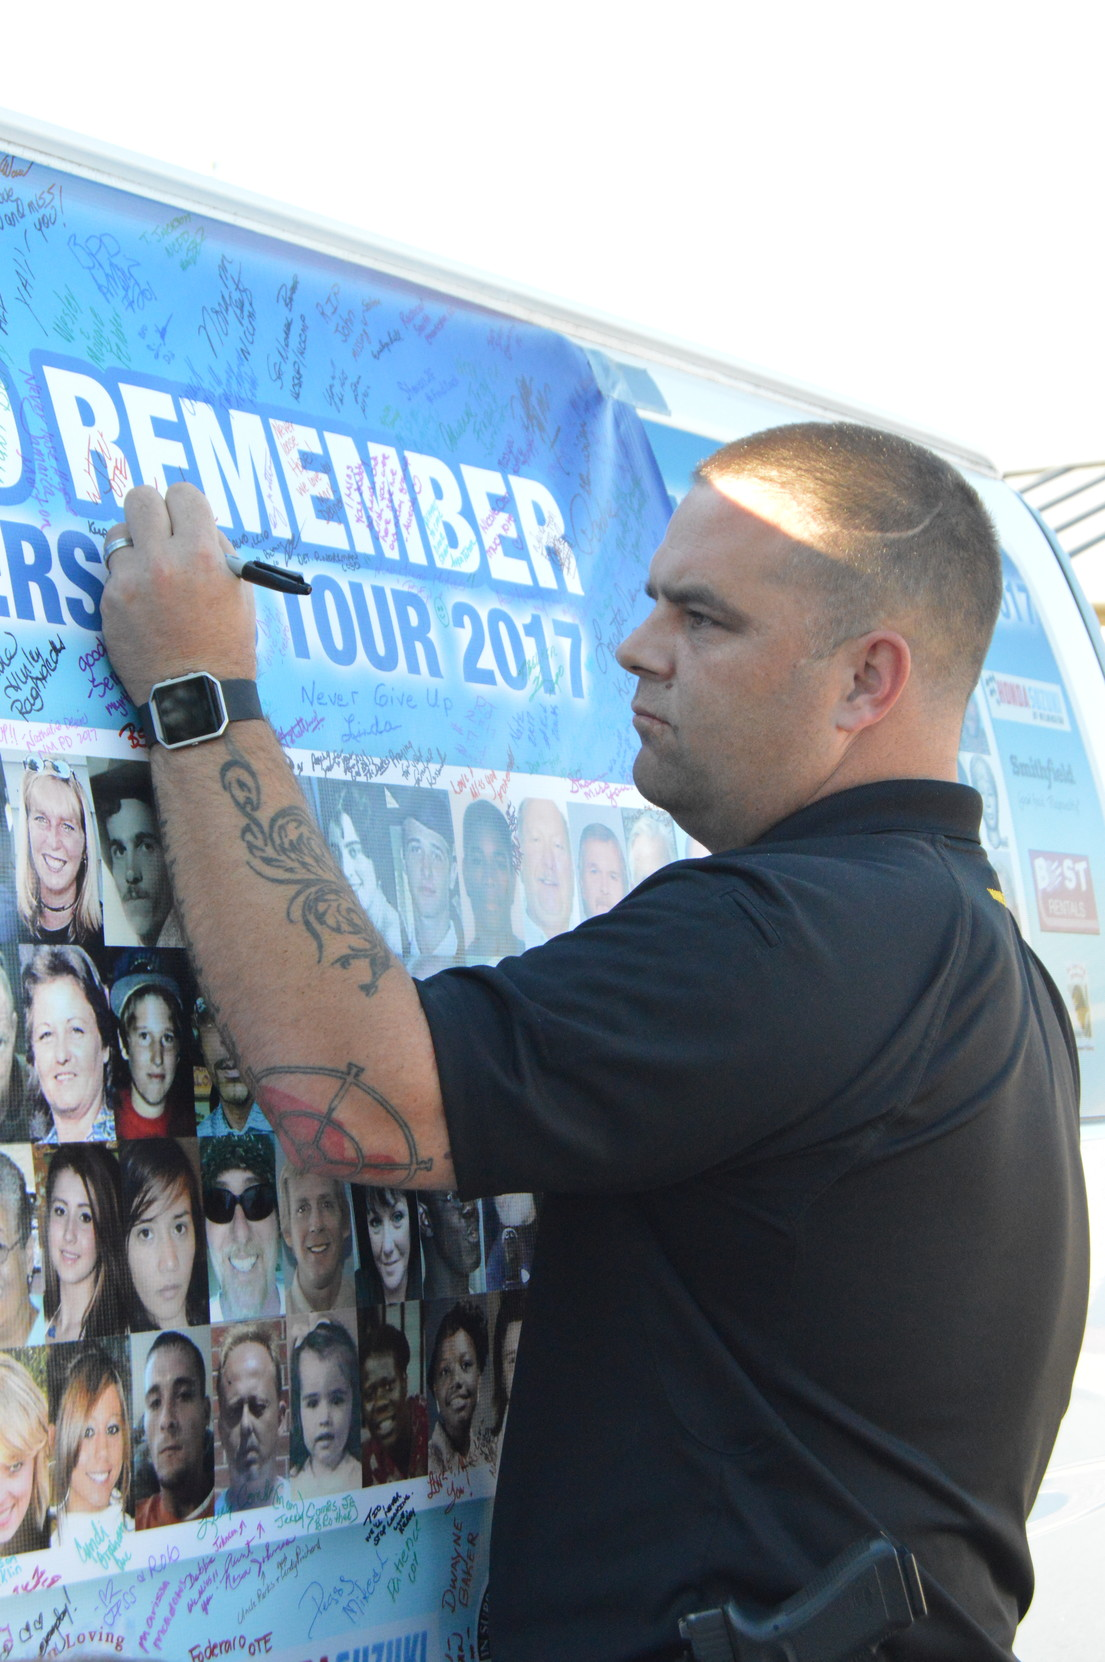 ADRIENNE SARVIS / THE SUMTER ITEM  Lt. Jeffrey Richardson with Sumter County Sheriff's Office signs a banner attached on the side of Community United Effort's vehicle during the organization's annual On the Road to Remember tour on Friday. The banner includes photos of missing and unidentified people.